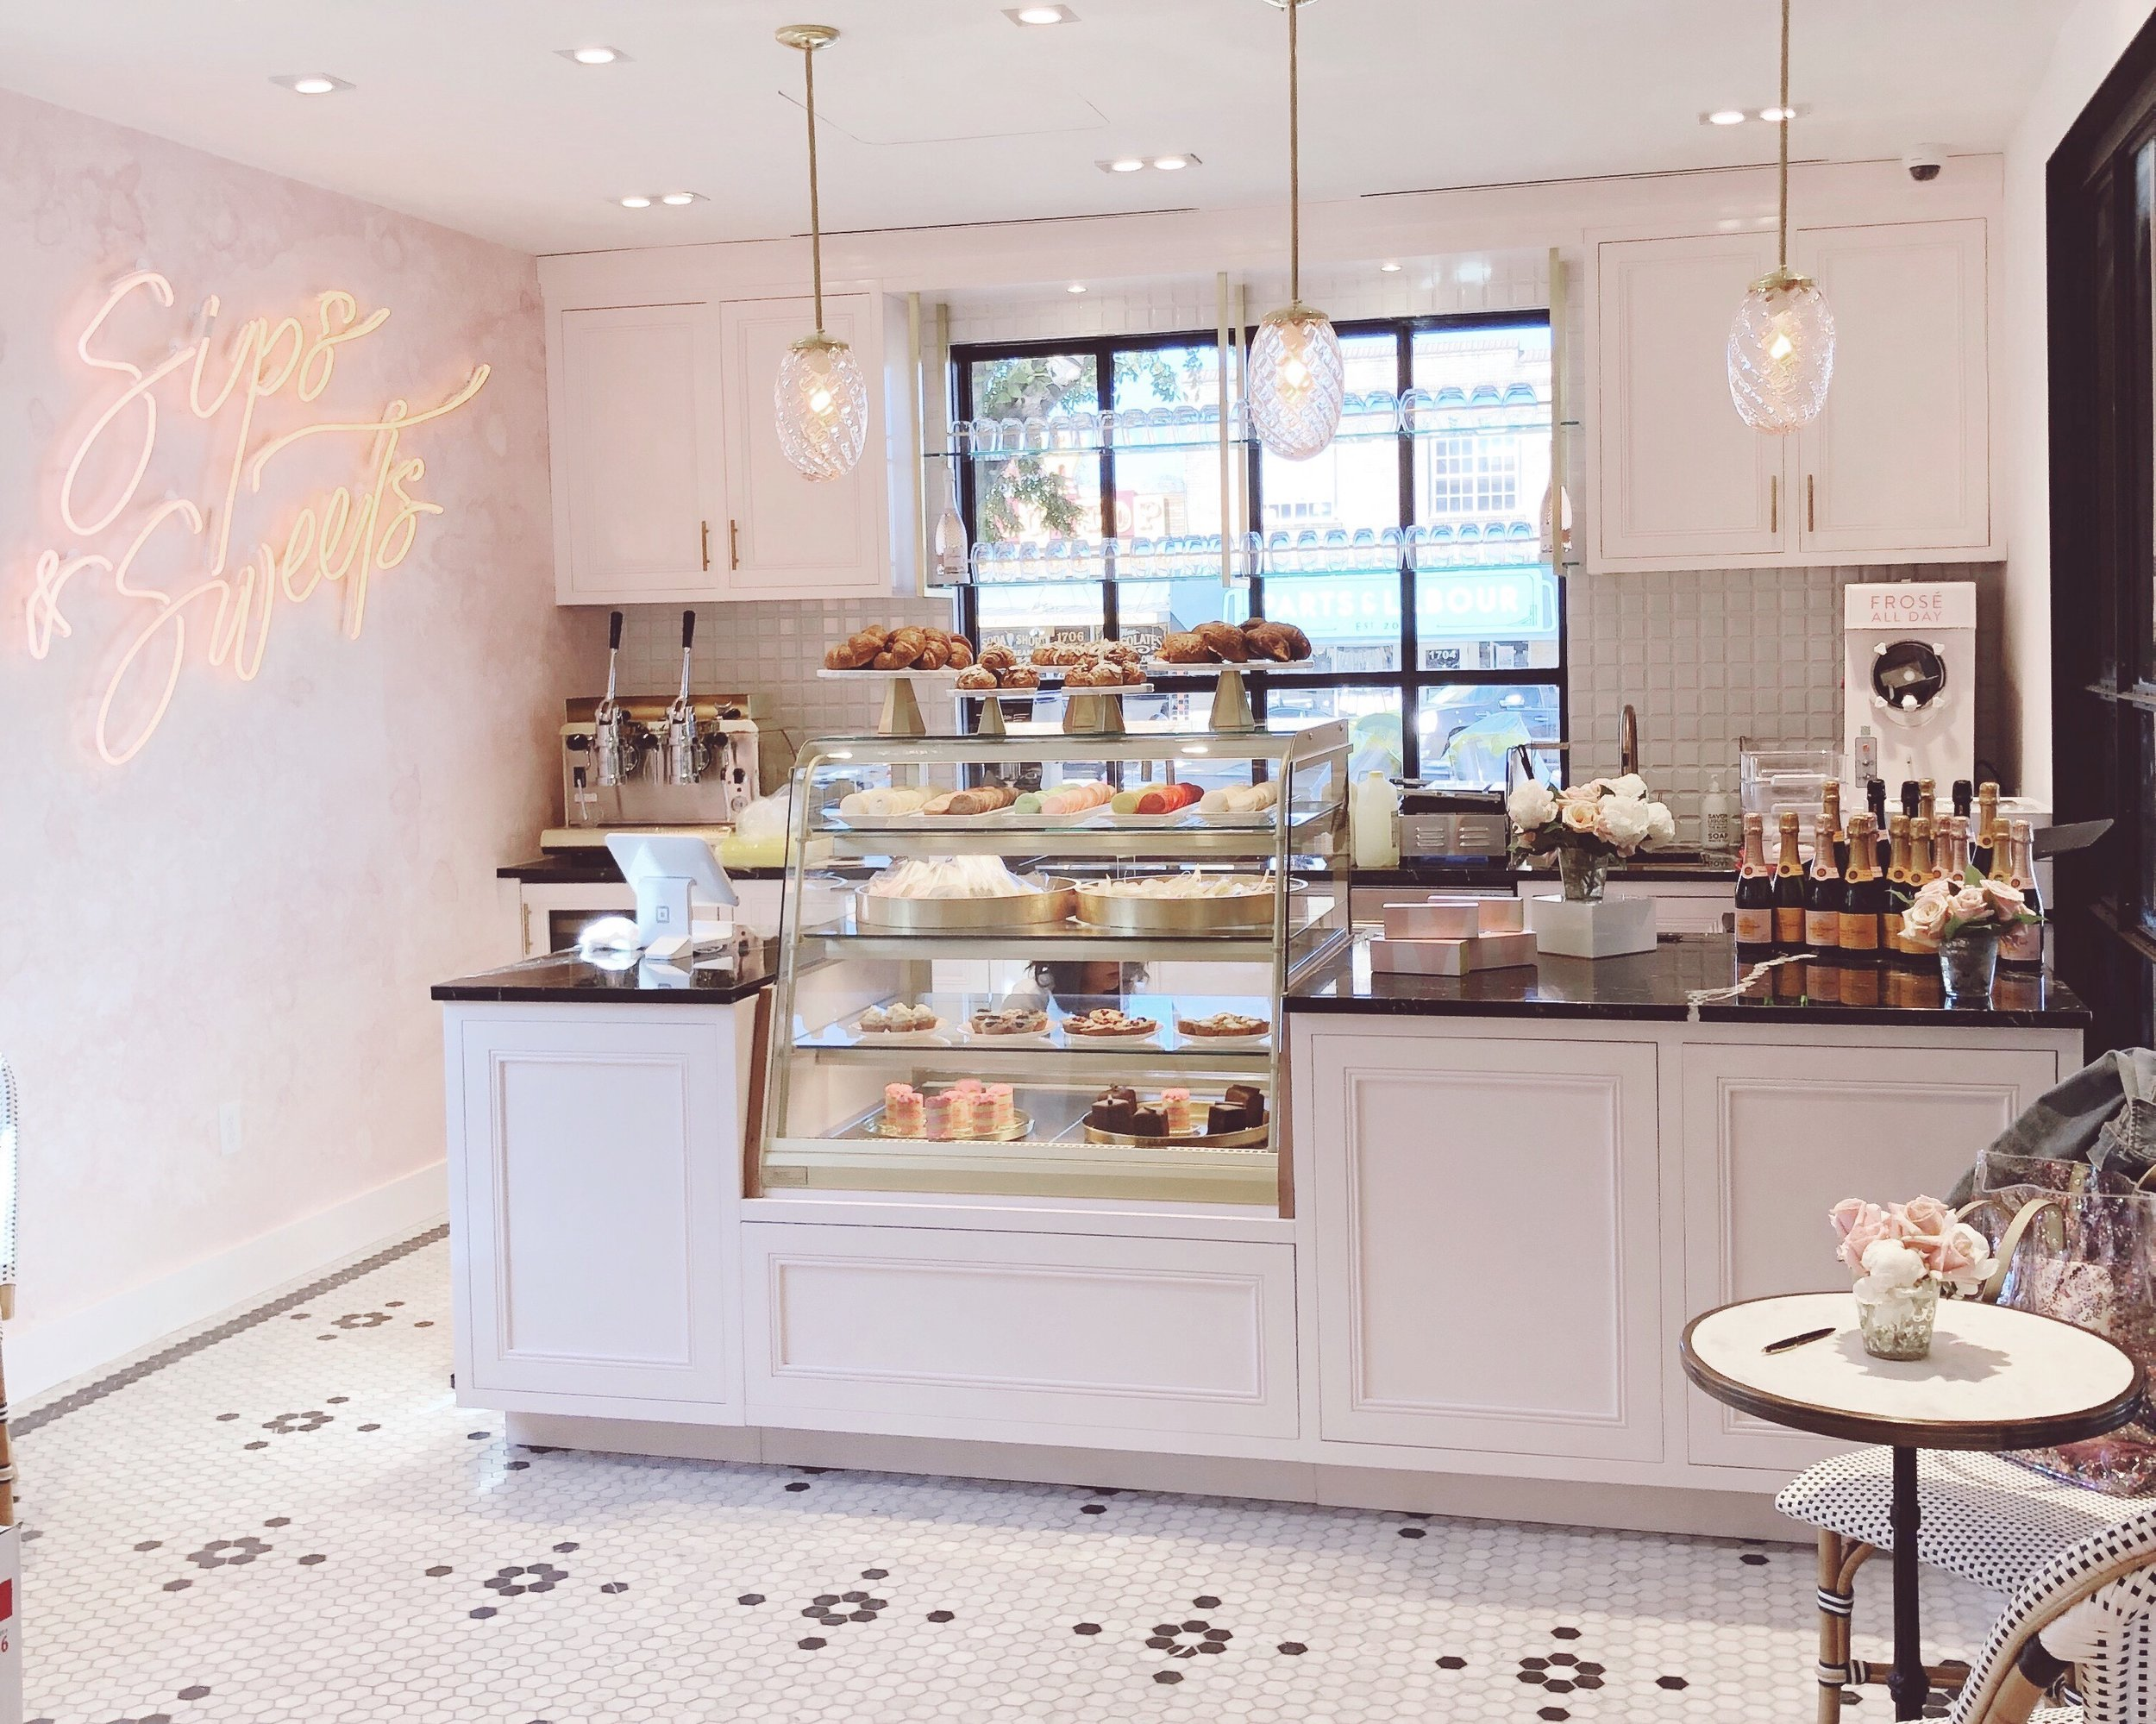 Kendra Scott Sips and Sweets Cafe in Austin, TX